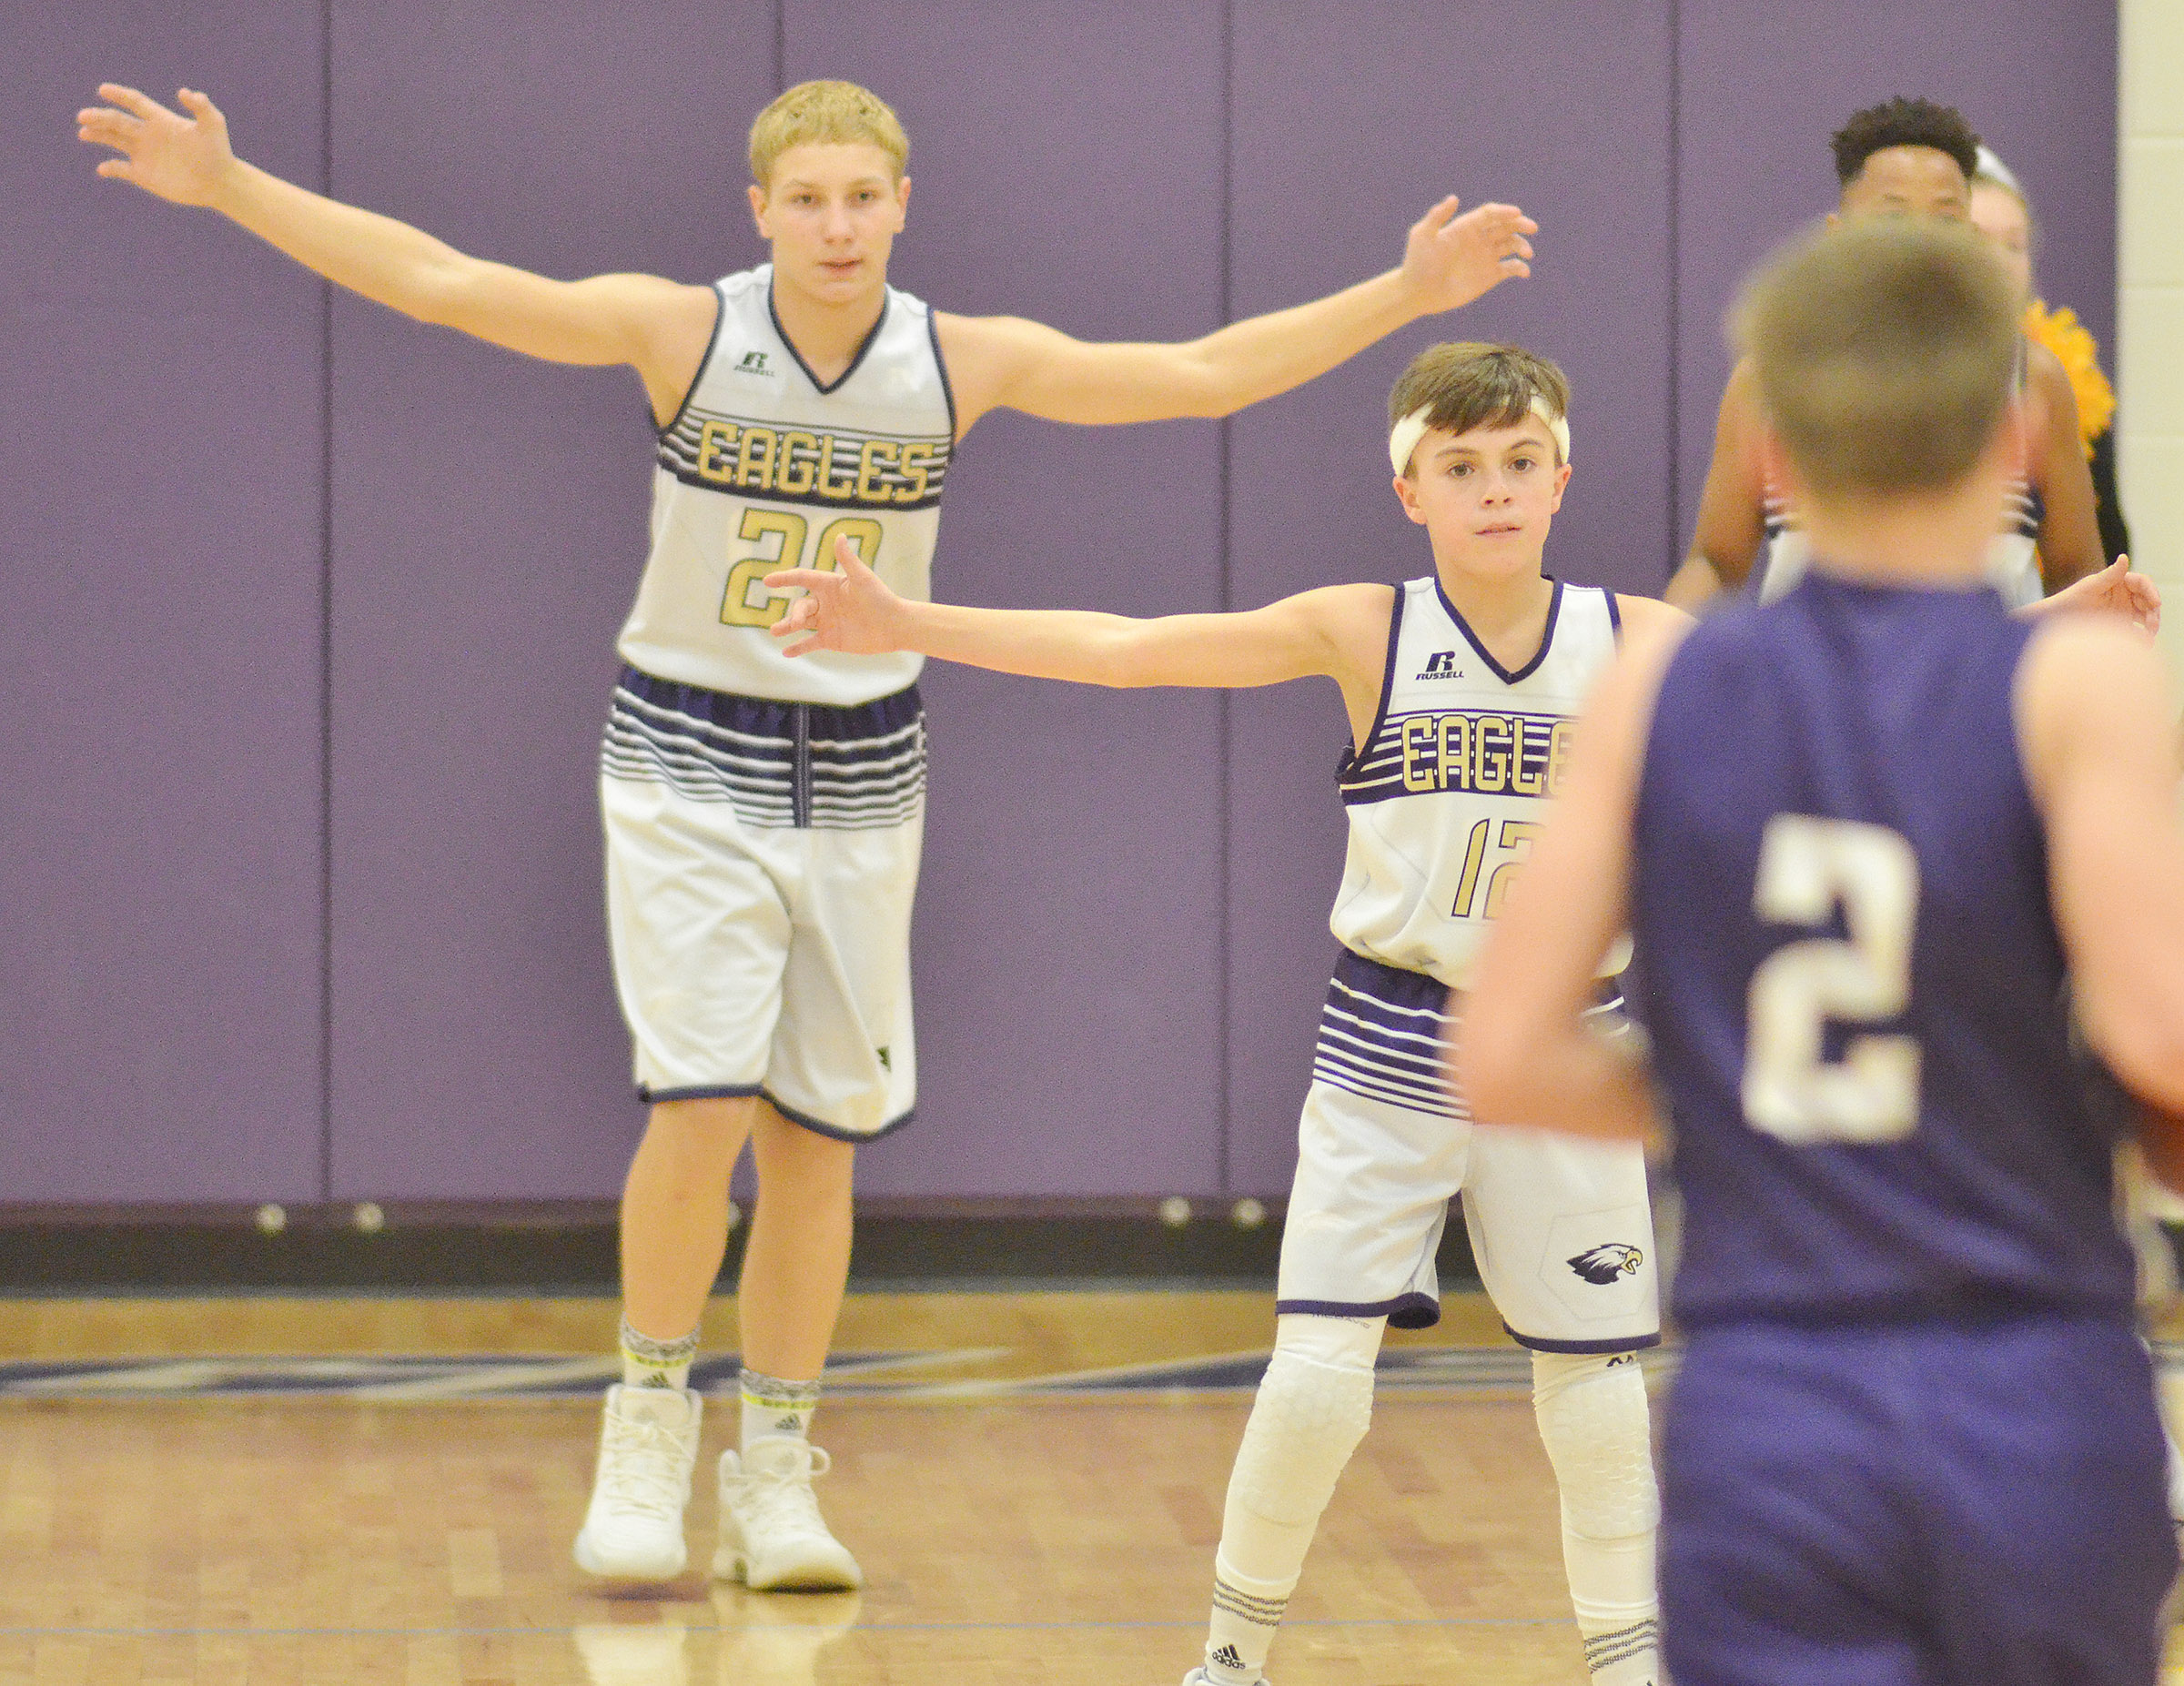 CMS seventh-graders Damon Johnson, at left, and Chase Hord play defense.